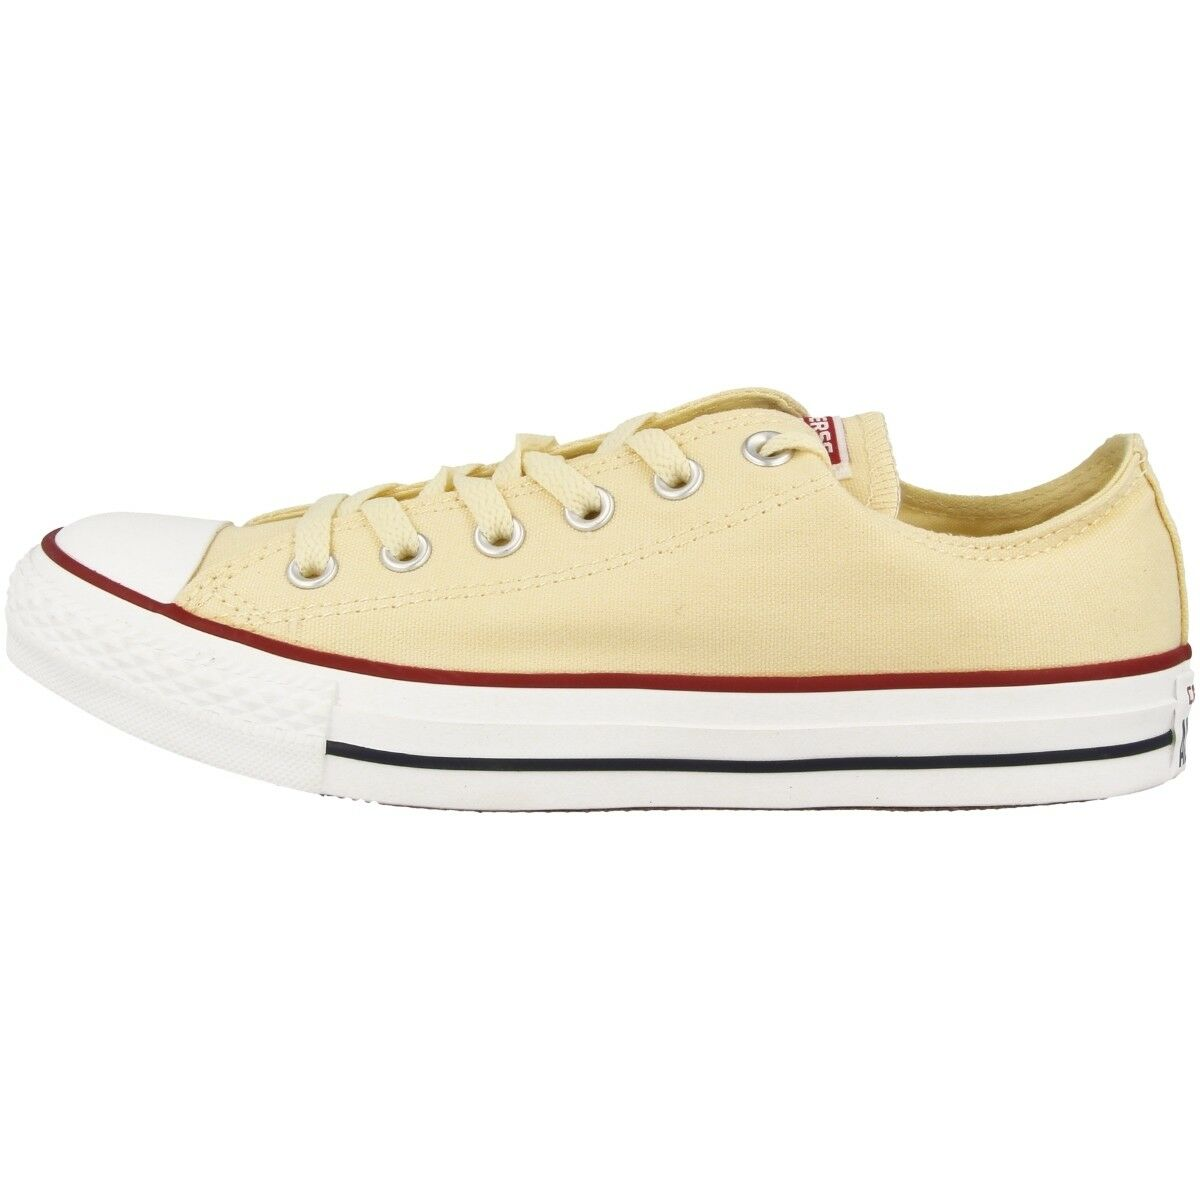 CONVERSE CHUCK TAYLOR M9165 ALL STAR OX Zapatos M9165 TAYLOR BEIGE 40ca42